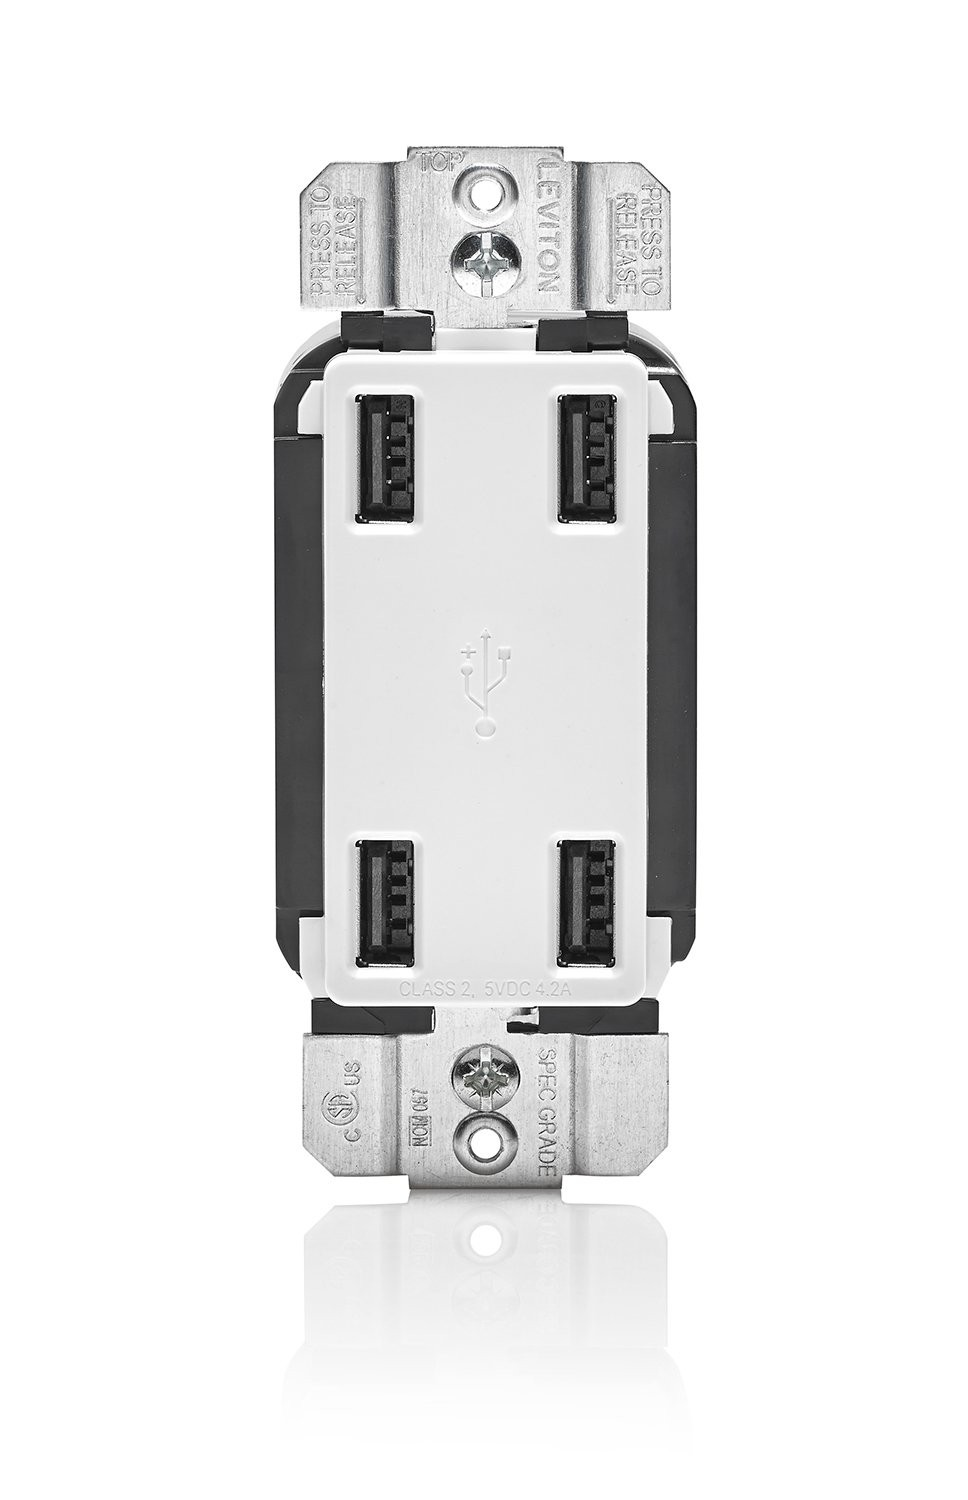 Leviton® Dimmers, Light Switches, & Electrical Outlets - Page 59